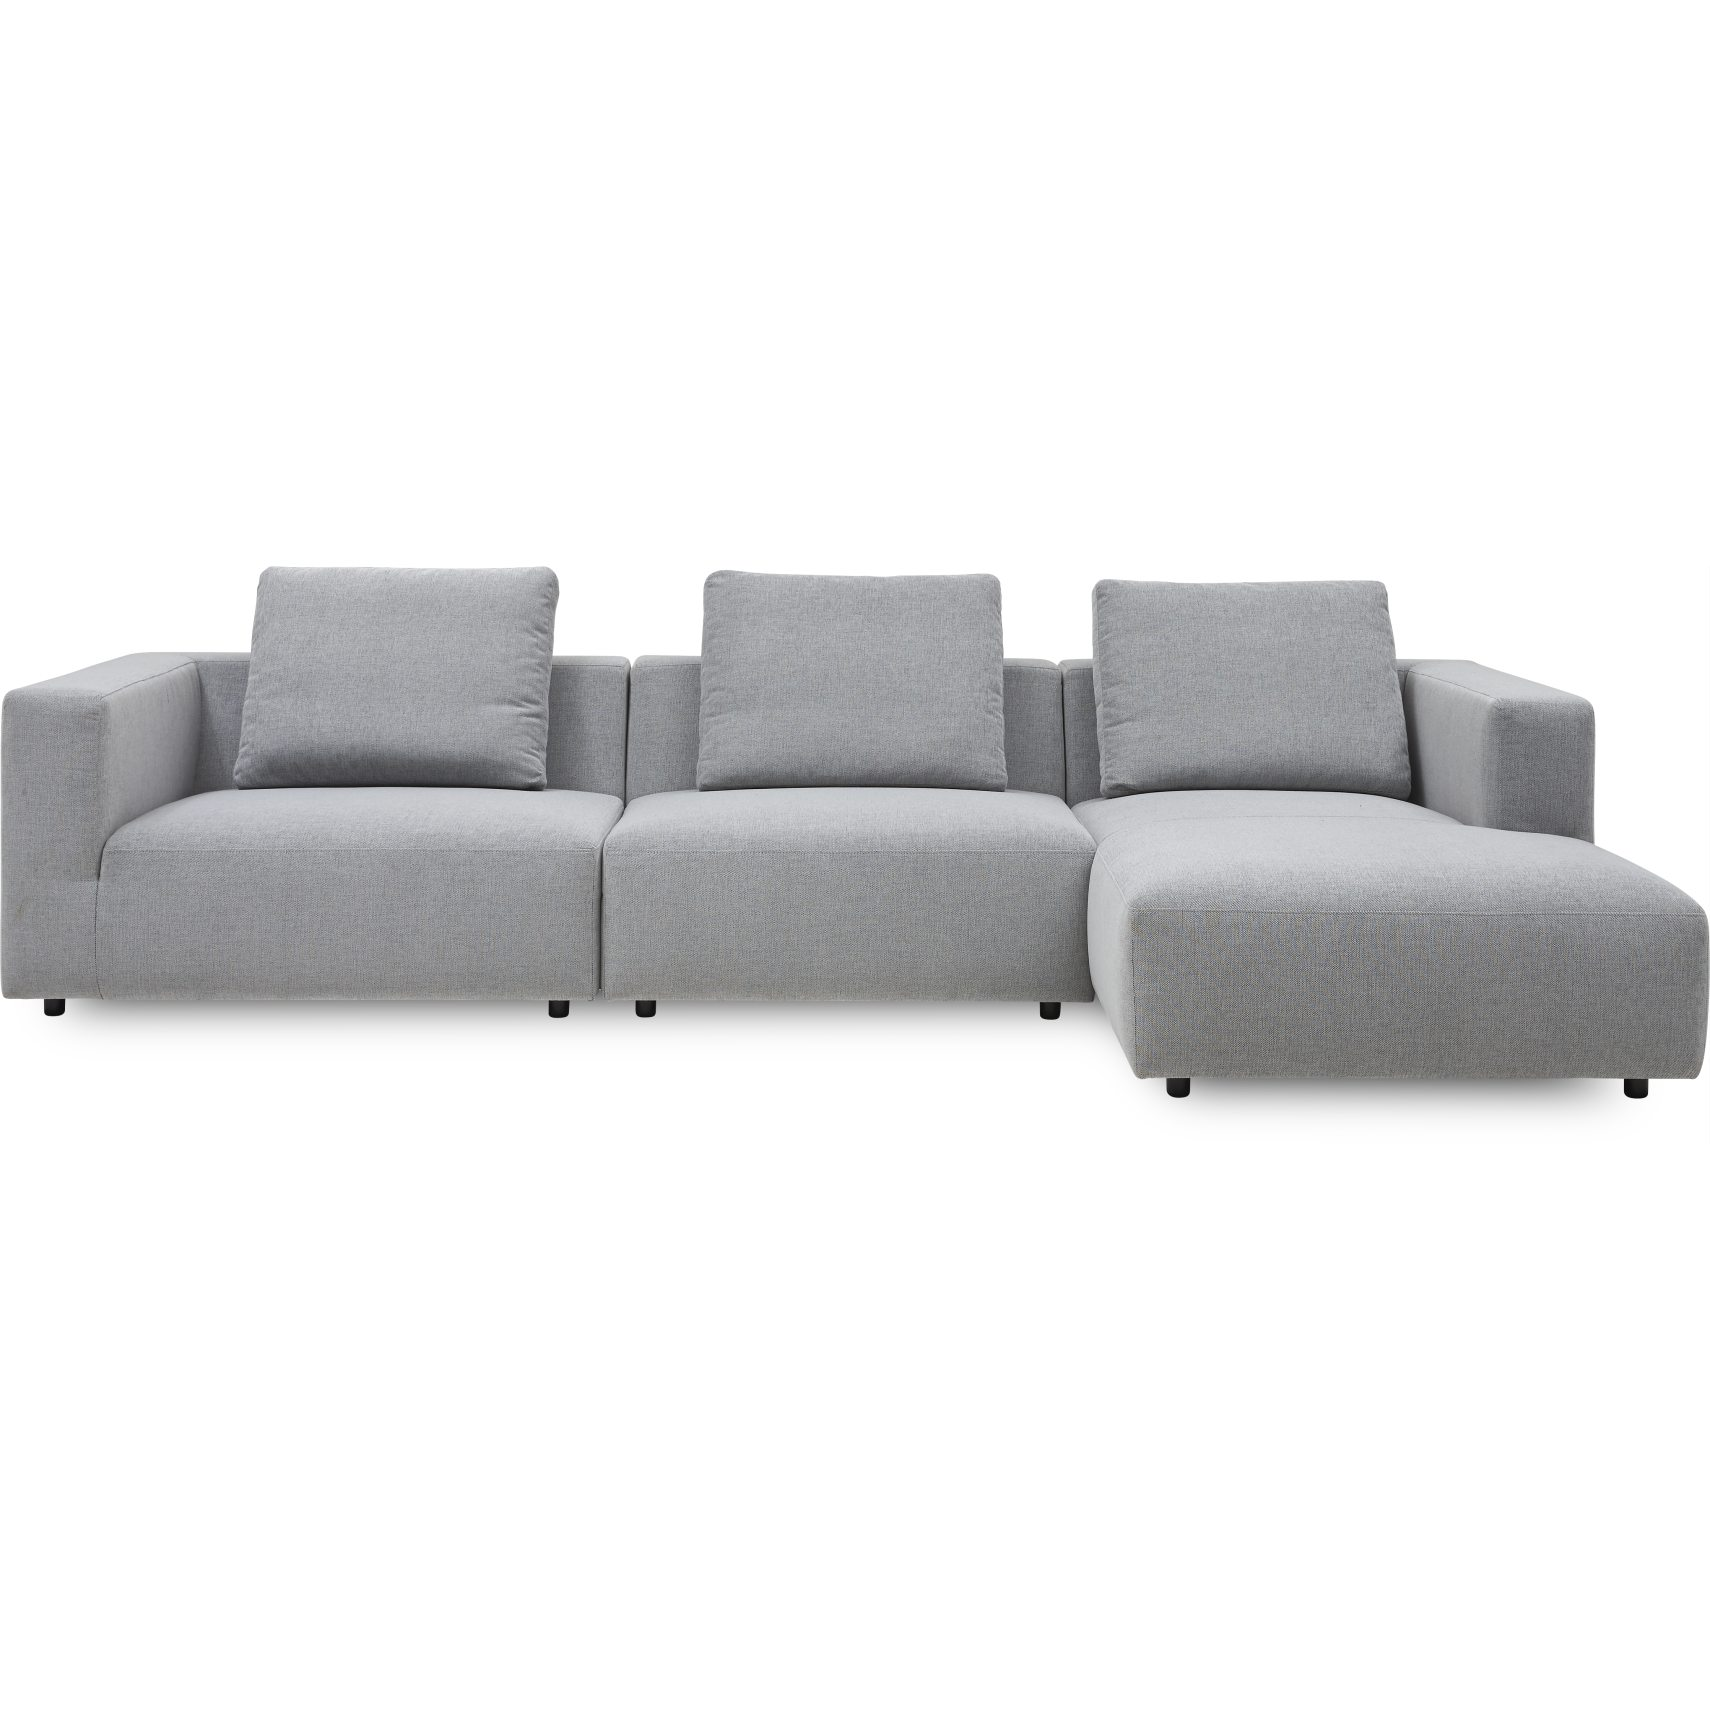 Carmel Sofa med chaiselong - Sofa med chaiselong